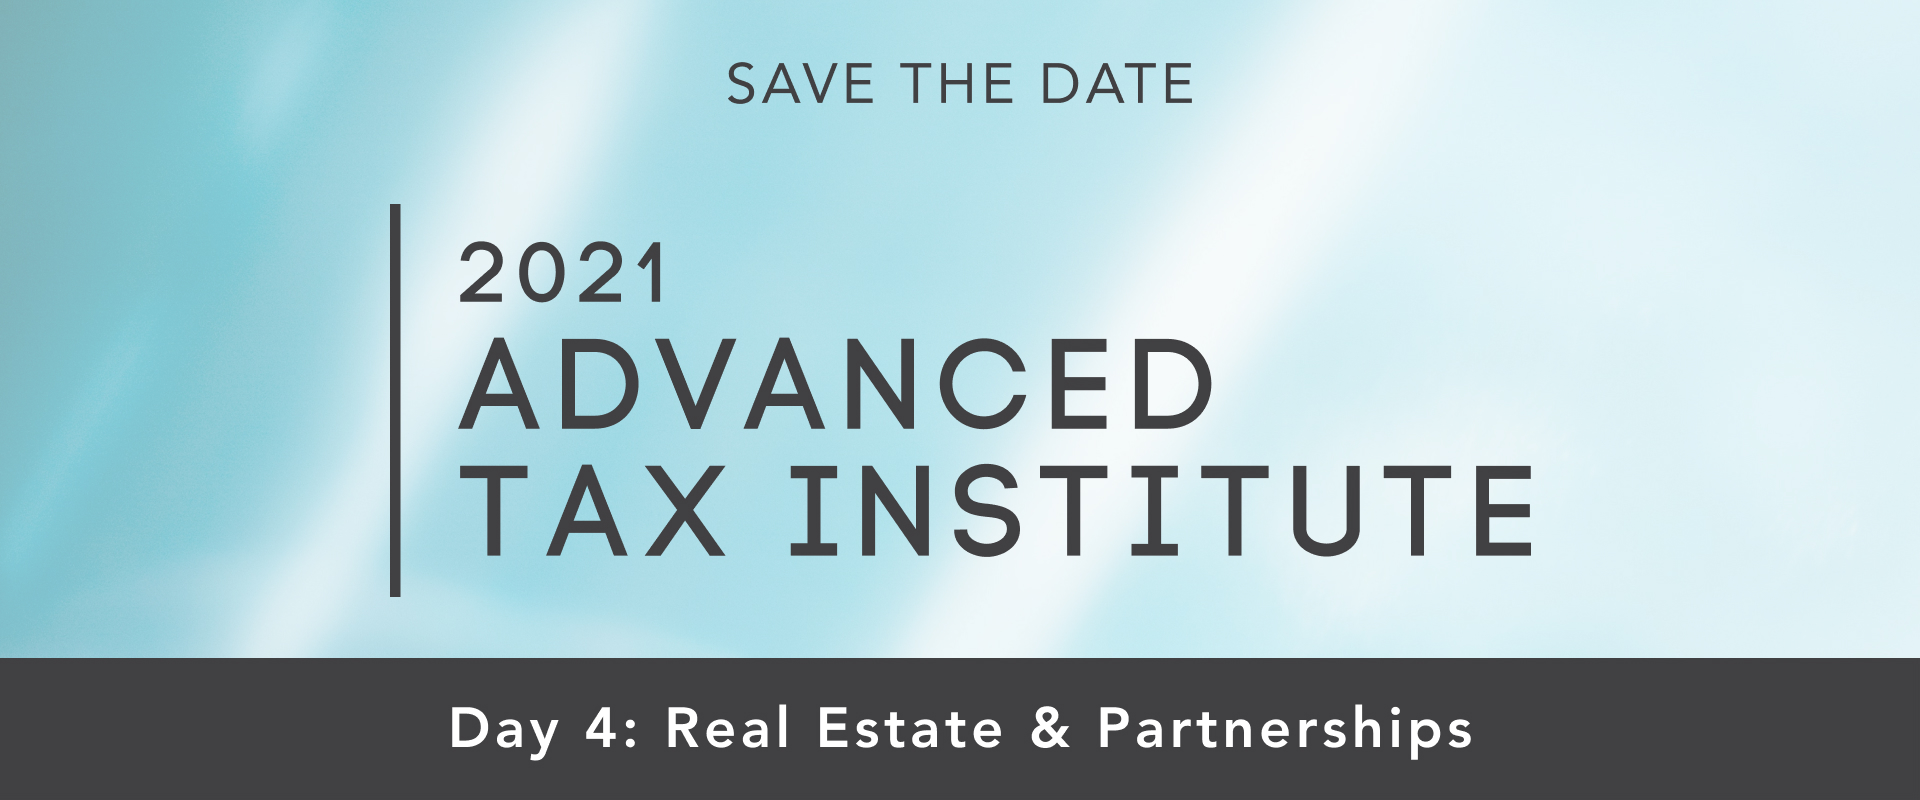 2021 ADVANCED TAX INSTITUTE DAY 4 REAL ESTATE & PARTNERSHIPS